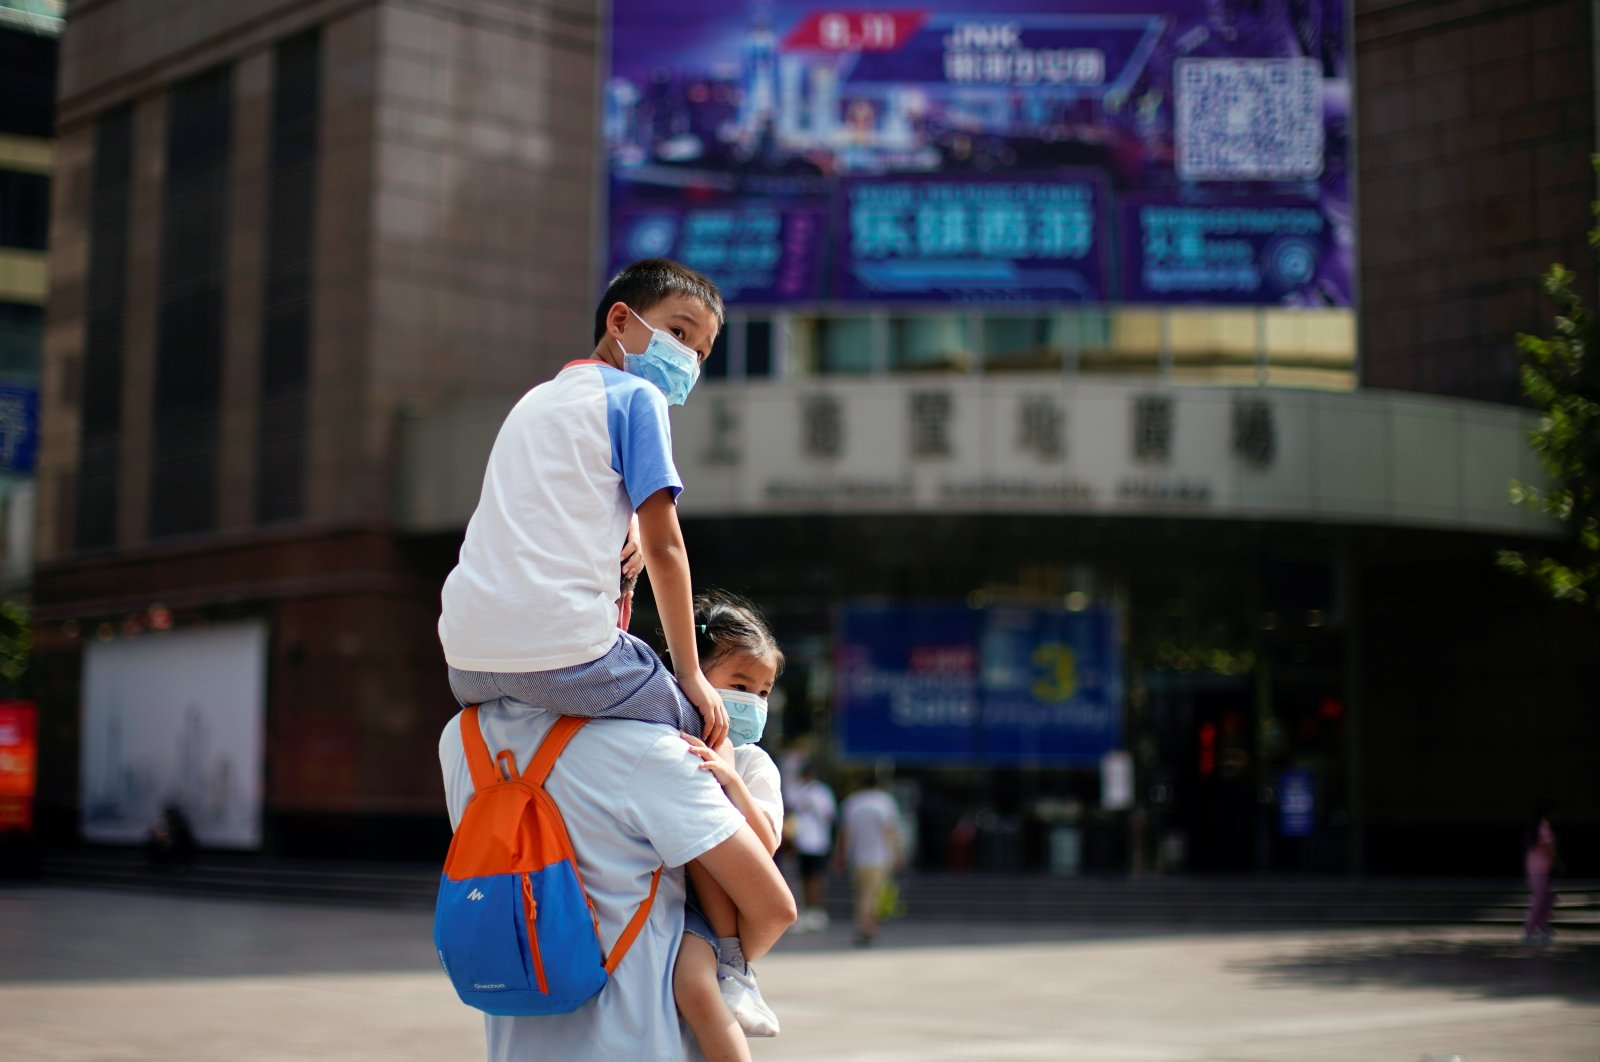 A man carries two children, all wearing protective face masks following new cases of COVID-19, on a street in Shanghai, China, Aug. 25, 2021. (Reuters Photo)